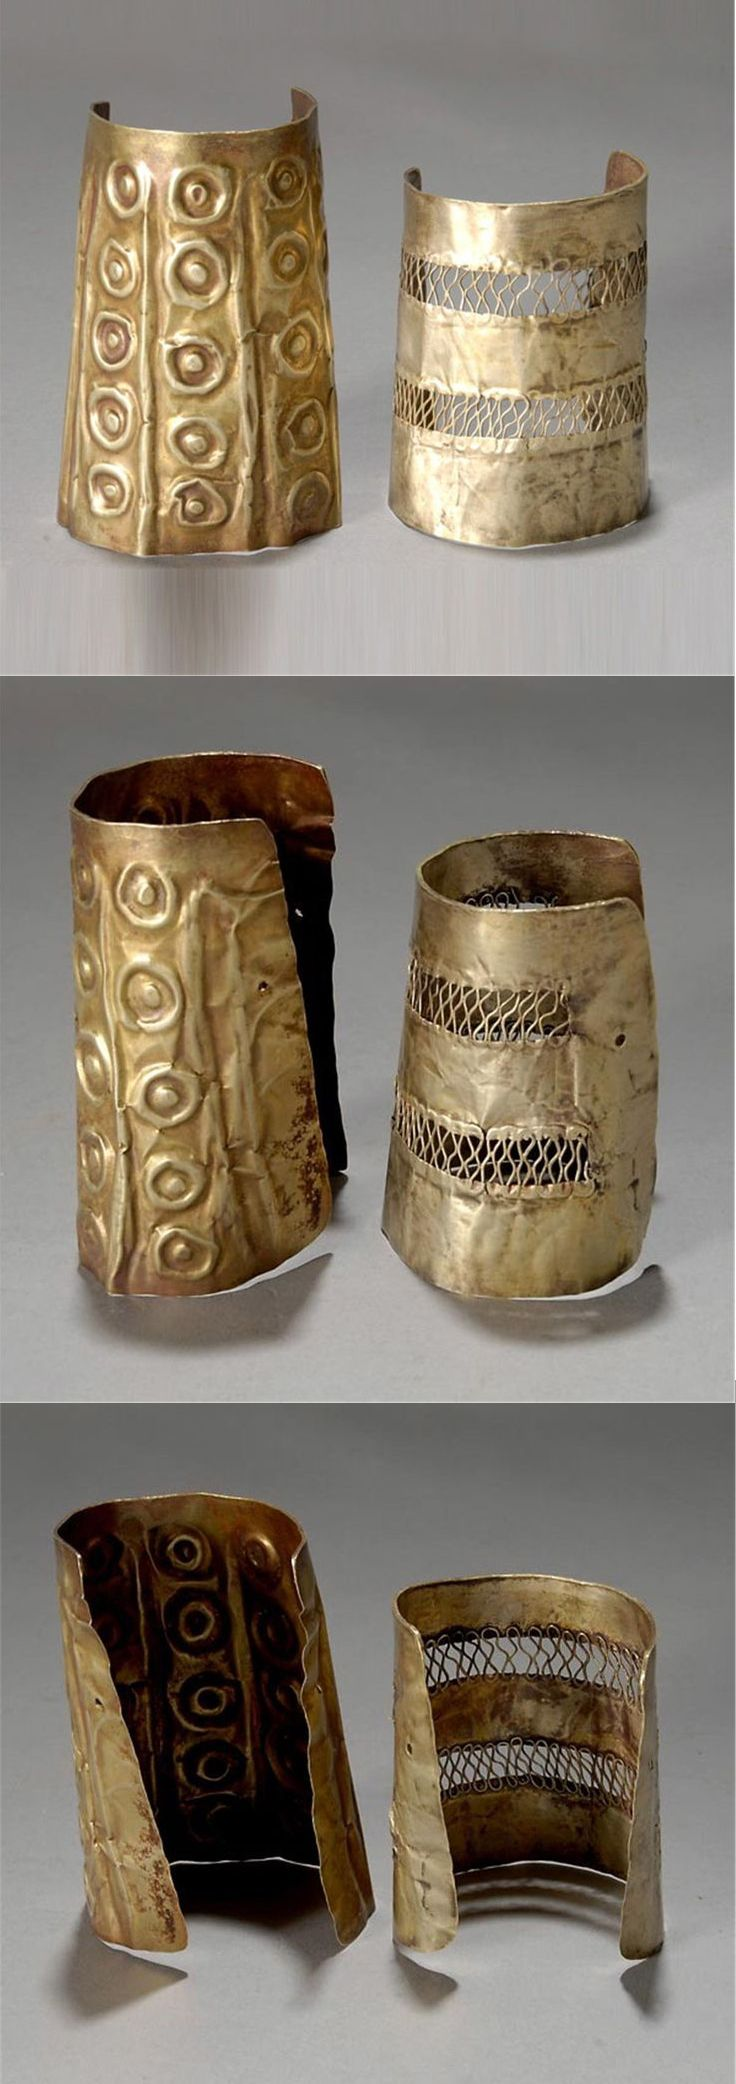 Cultura Moche !!Two ancient ANDEAN wrist guards or cuffs, Moche or related people, Peru, circa 400 - 1100 A.D. Gold and silver. One with embossed rows of circle and dot pattern, the other with two filigree .